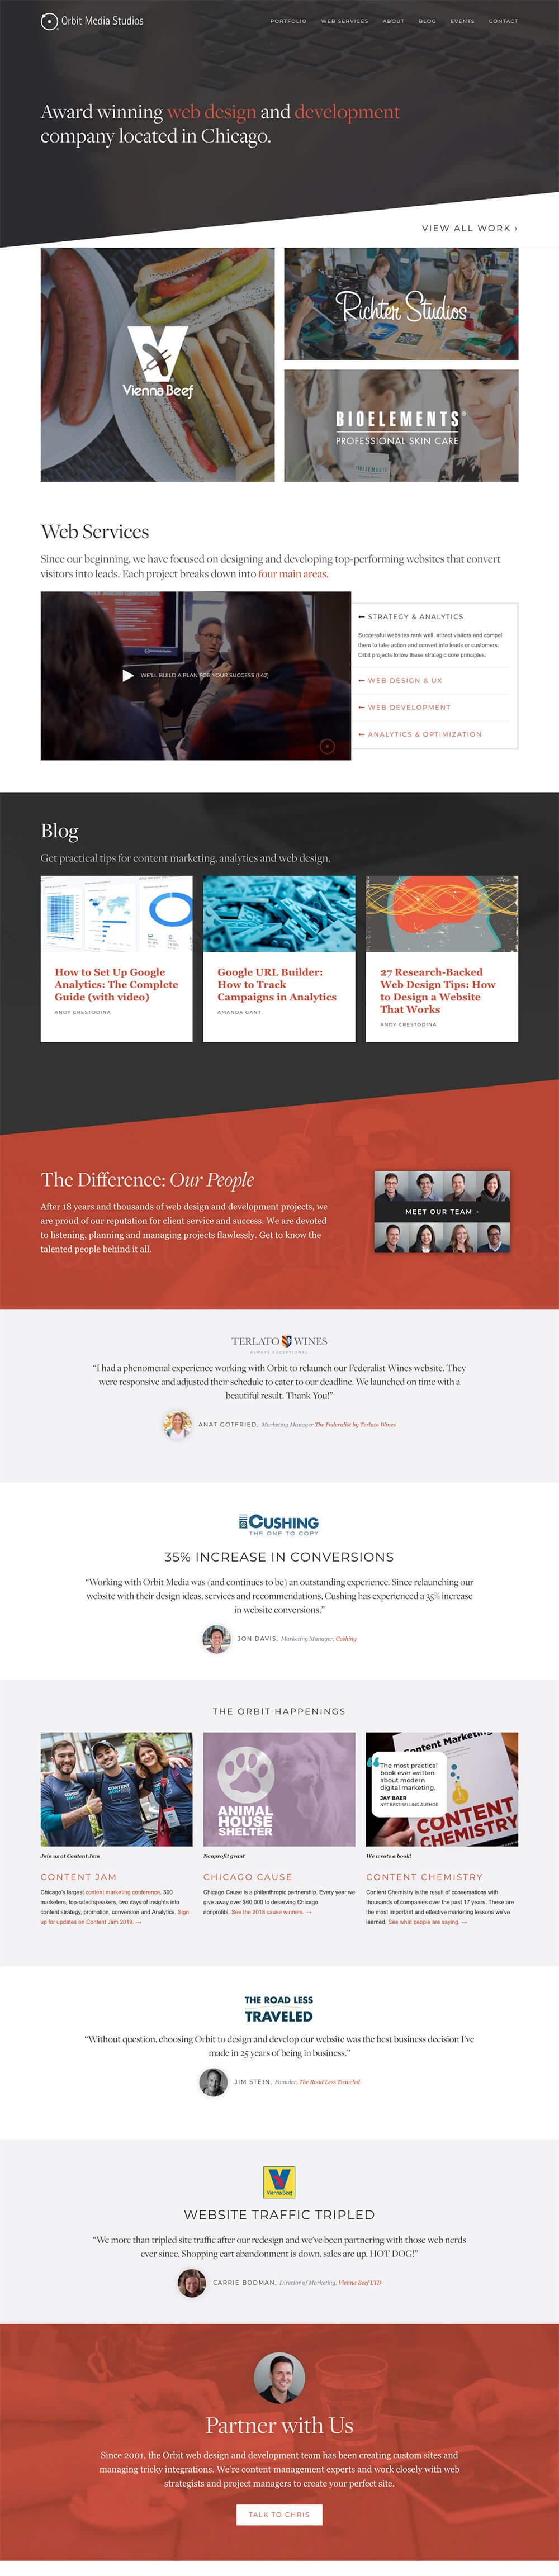 Home Page - Orbit Media-Award Winning Web Design and